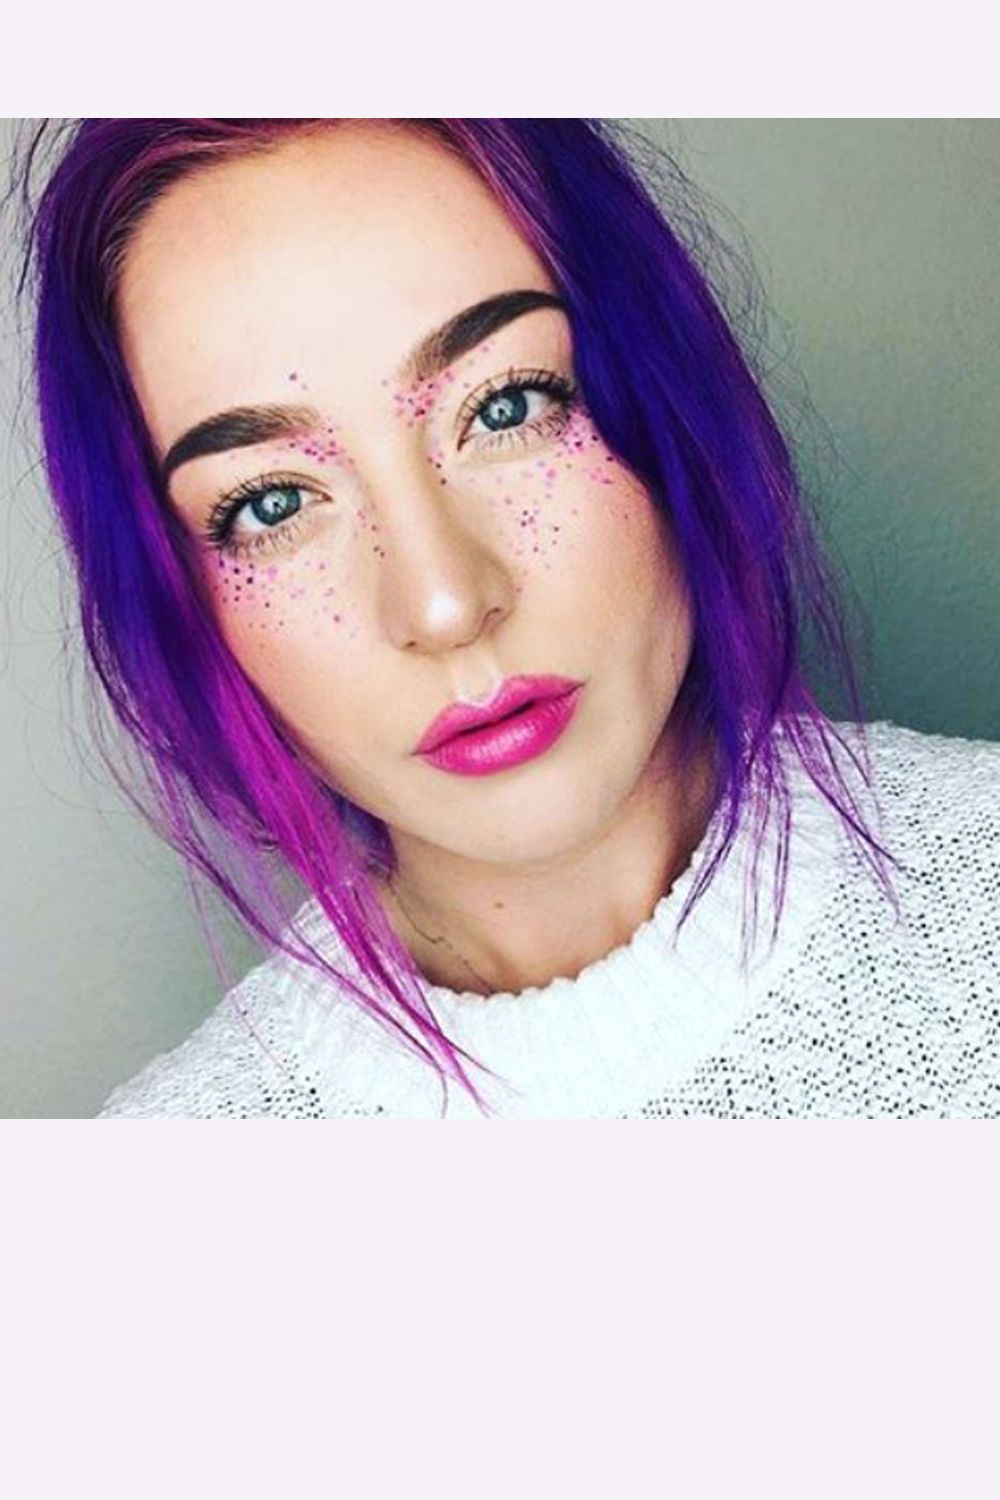 Image result for rainbow freckle image